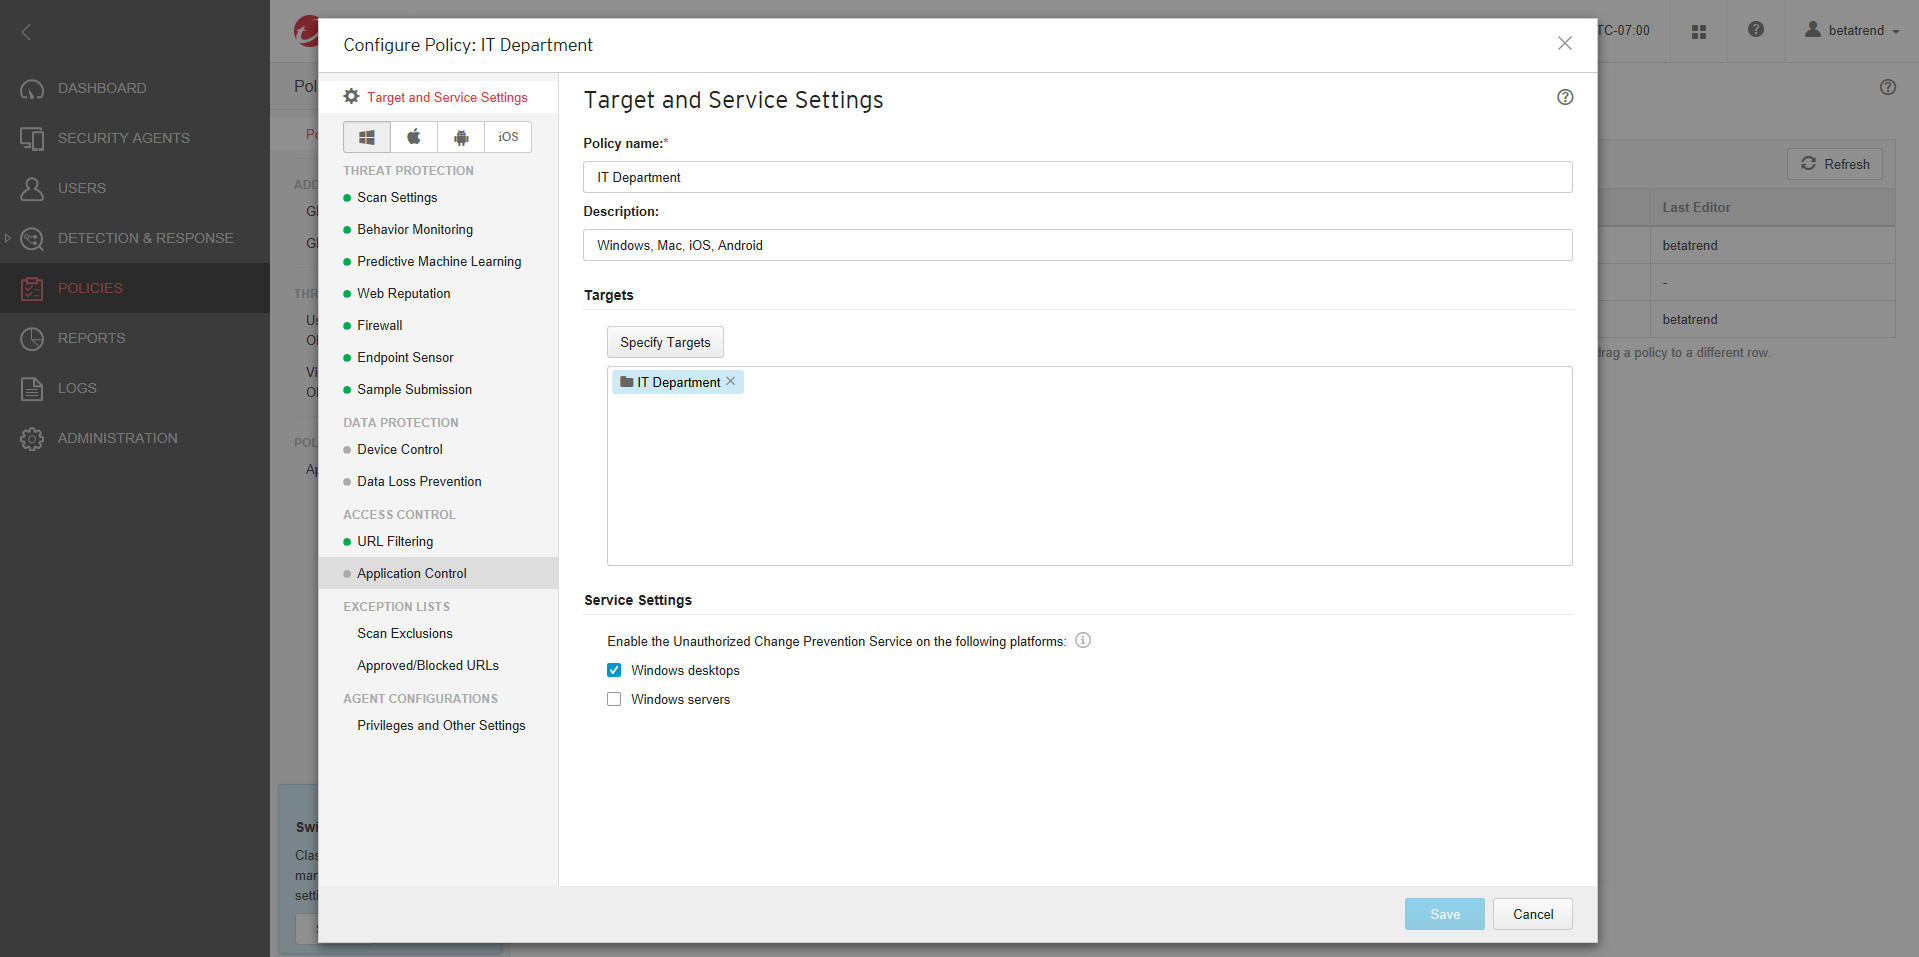 Configure Policy screen